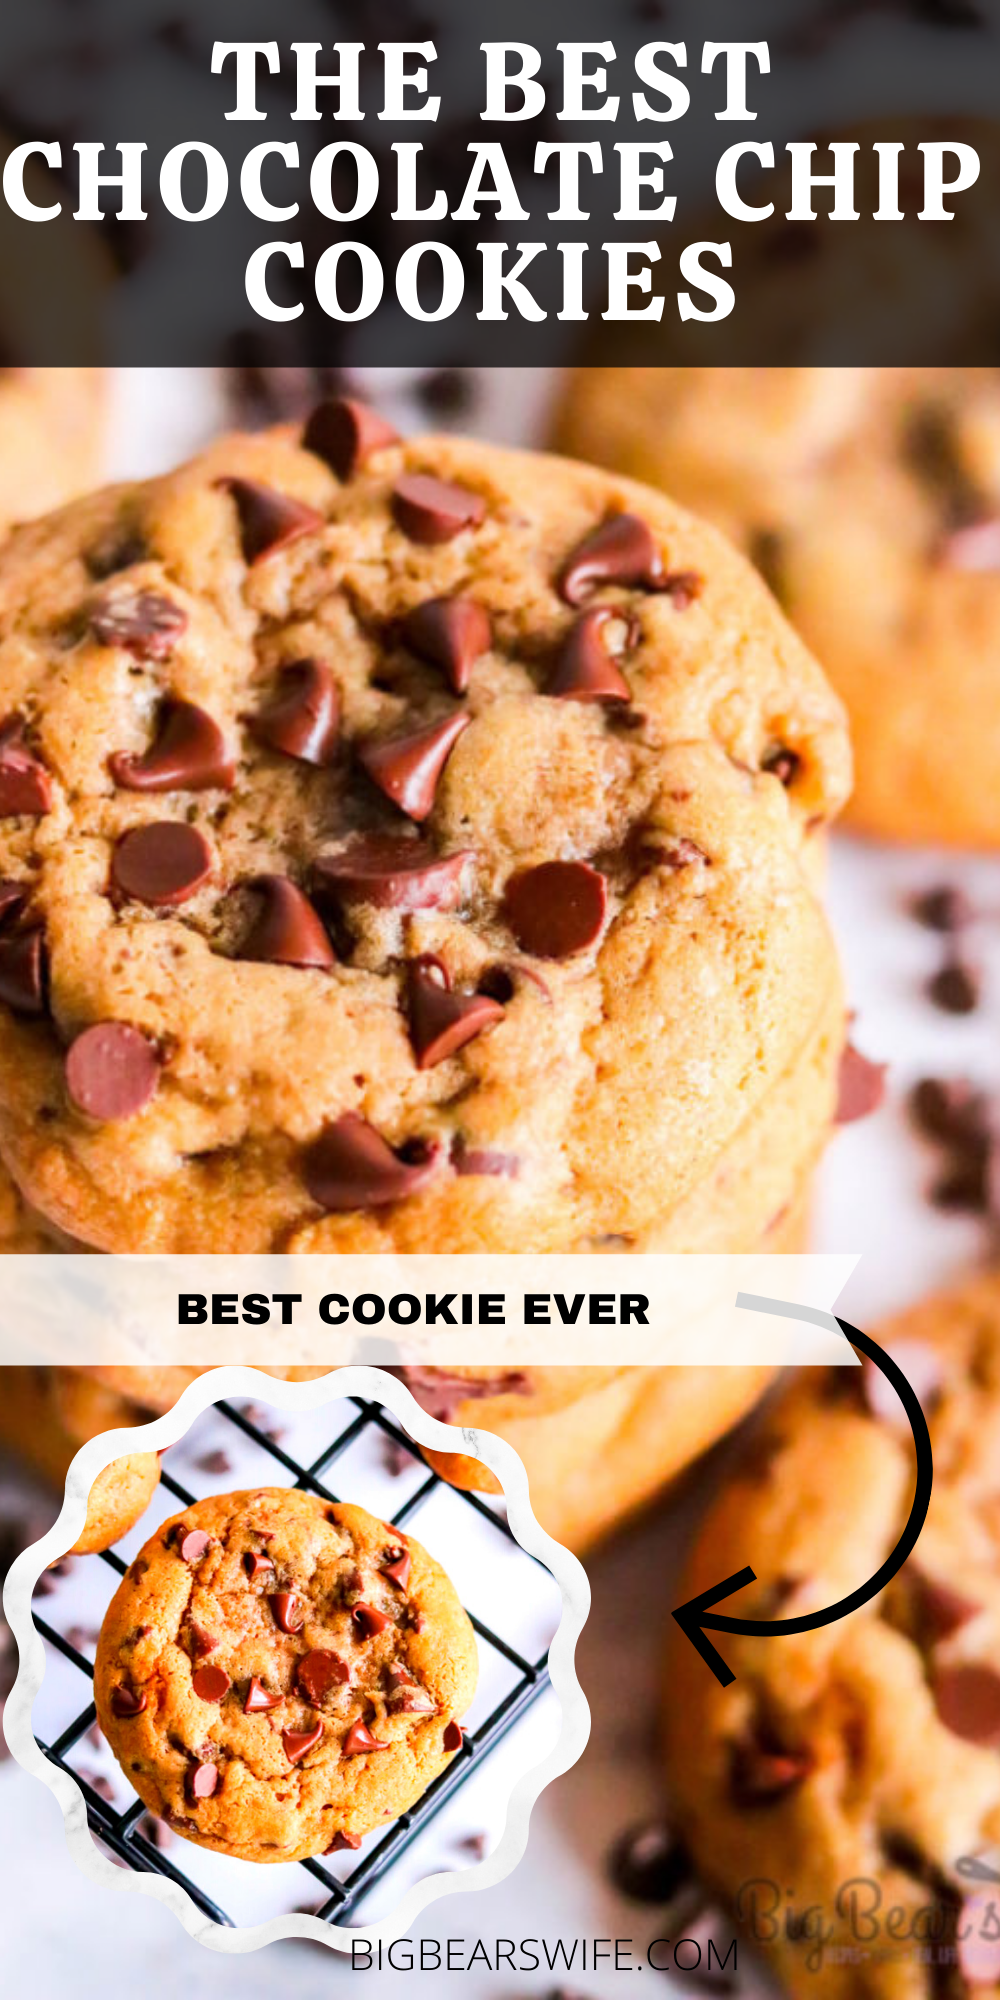 These Dark Brown Sugar Chocolate Chip Cookies might be the best chocolate chip cookie ever. Chilling the dough gives the cookie a soft and chewy texture and they're packed tons of chocolate chips! 